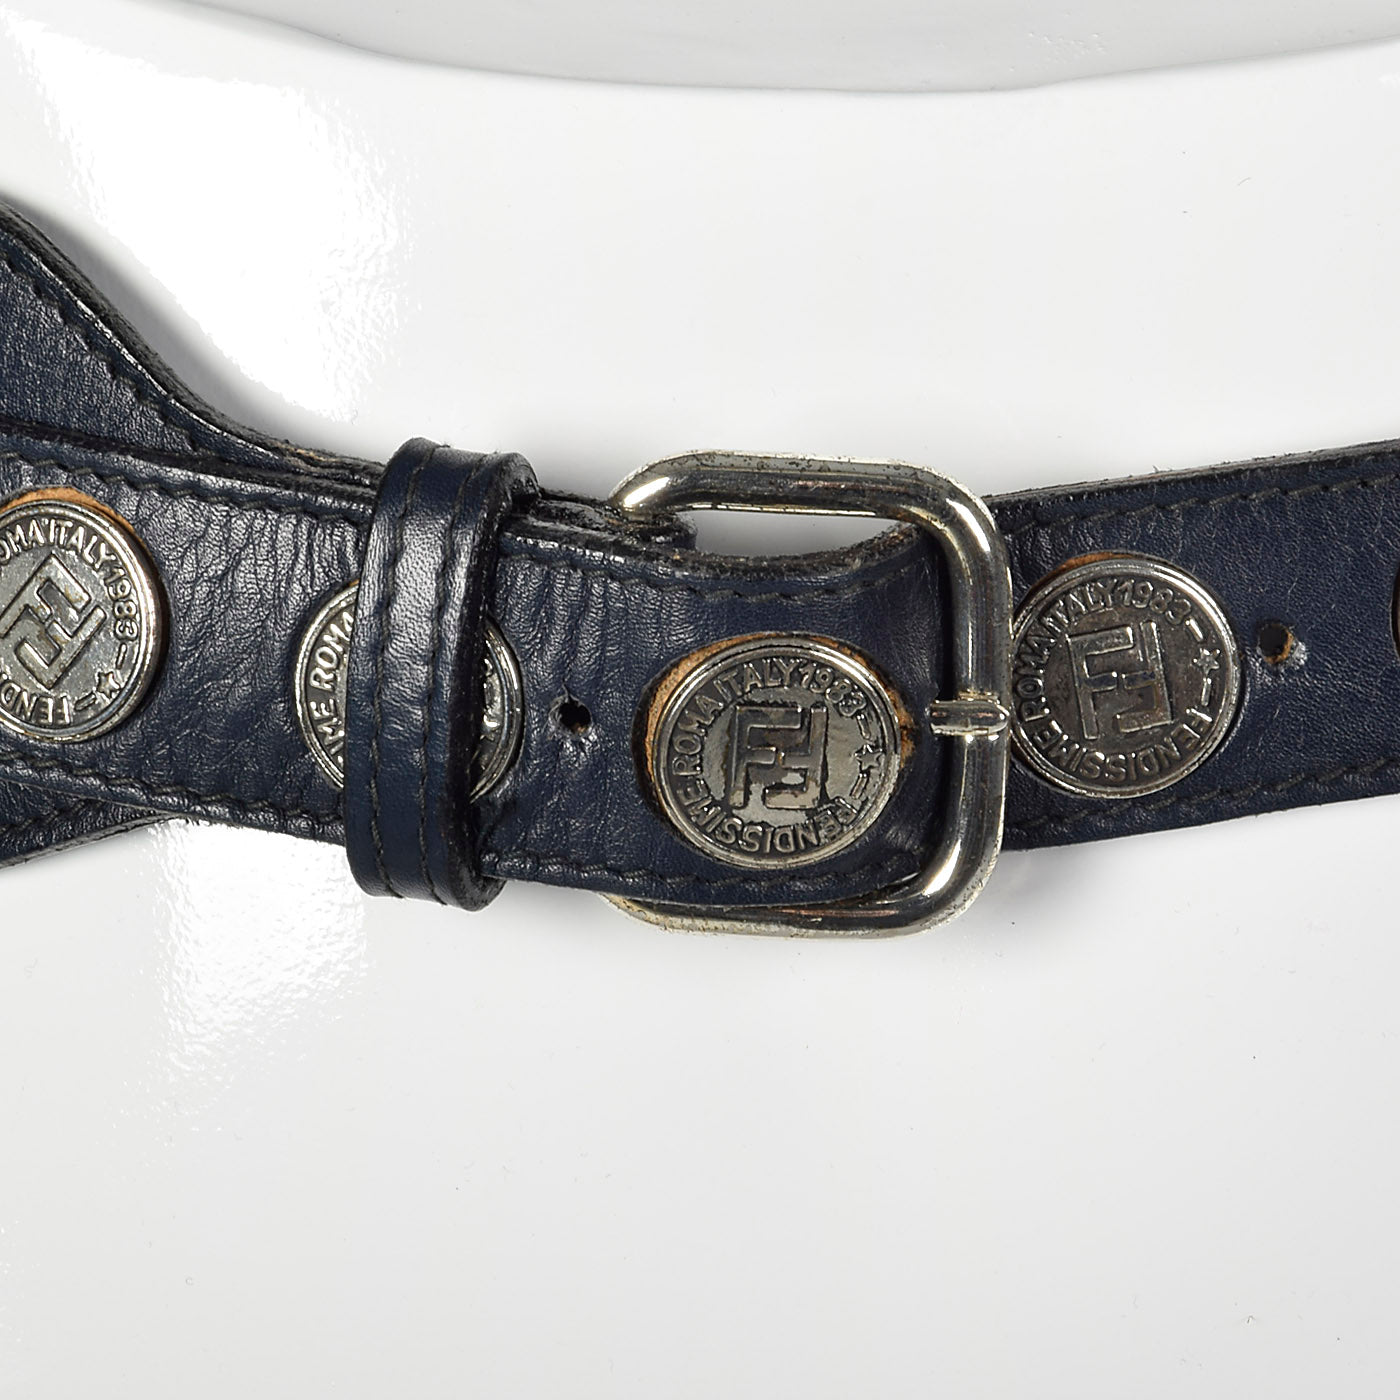 1980s Fendi Black Leather Belt with Snakeskin